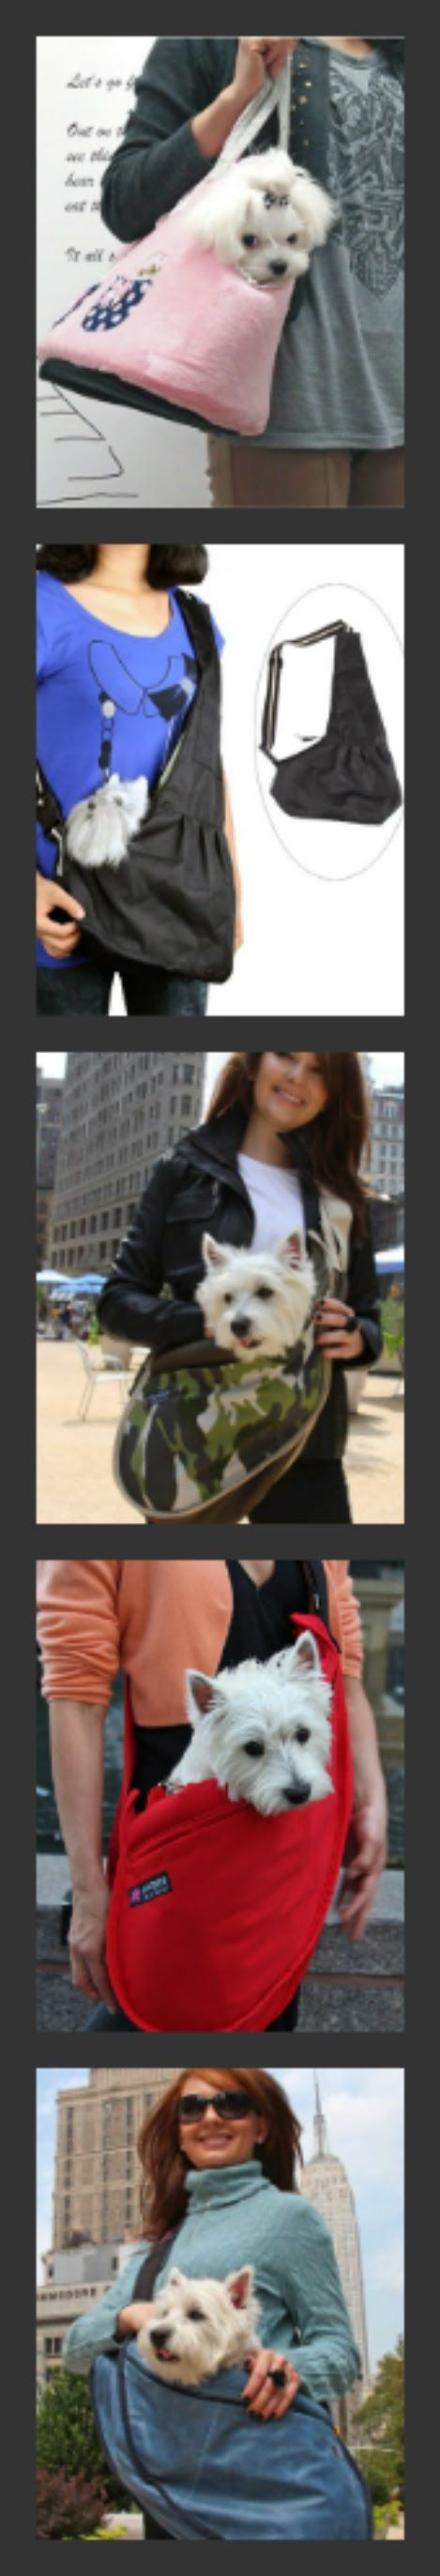 Dog Carrier #Dog Carriers #Pet Carriers #small dog carriers #Sling Dog Carriers #Pet Sling Carriers